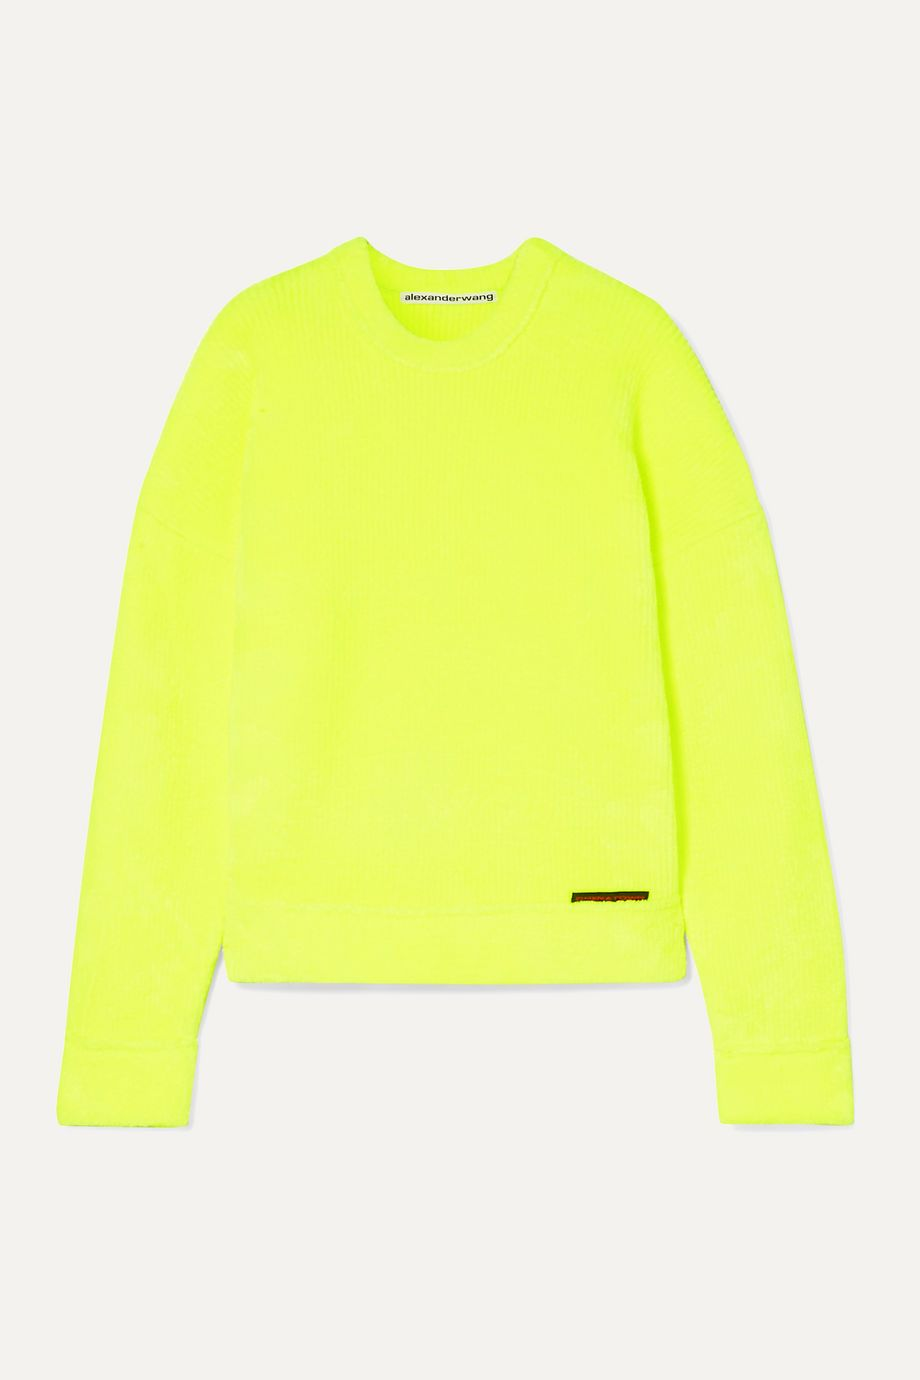 Alexander Wang Ribbed terry sweatshirt